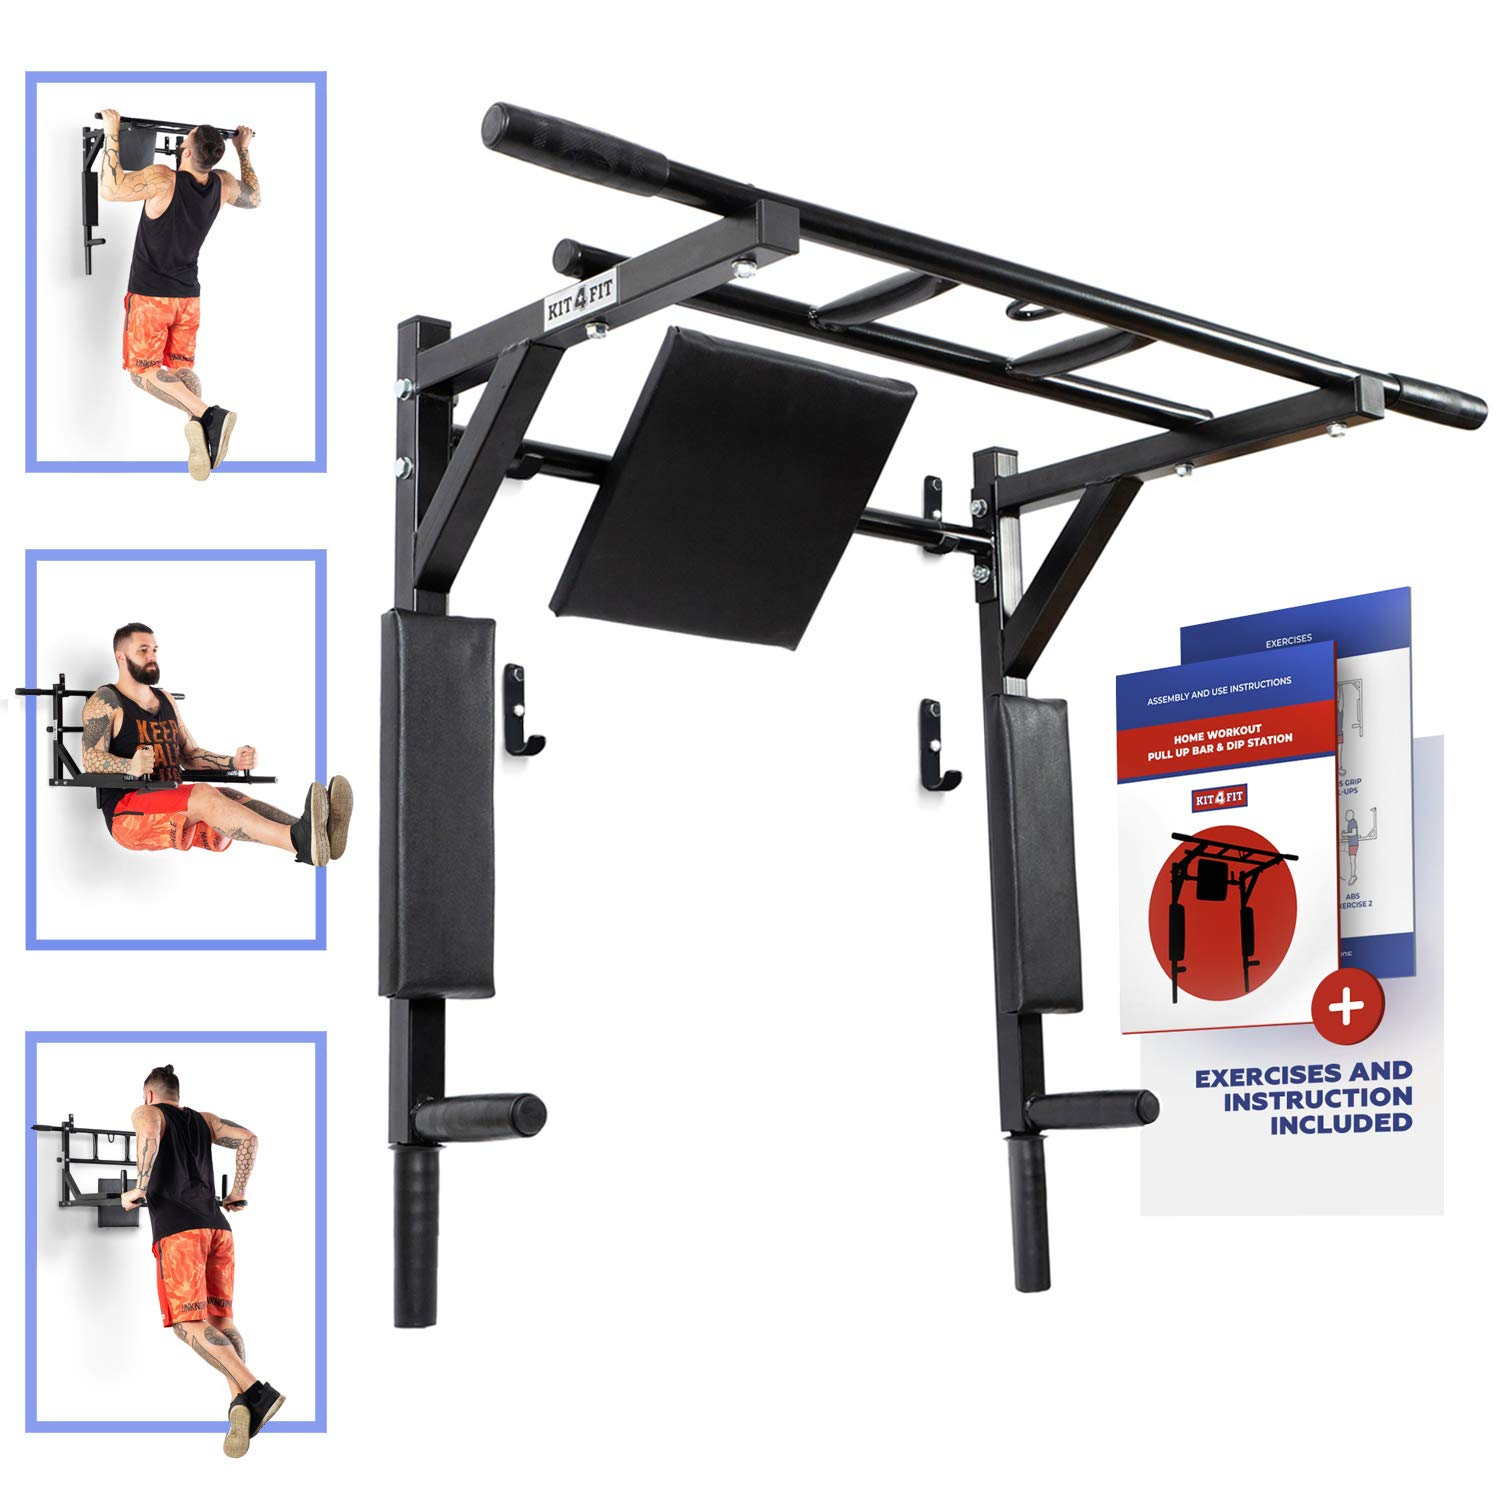 Wall Mounted Pull Up Bar and Dip Station with Vertical Knee Raise Station Indoor Home Exercise Equipment for Men Woman and Kids Great for Workout and Fitness (Black) by Kit4Fit (Image #1)